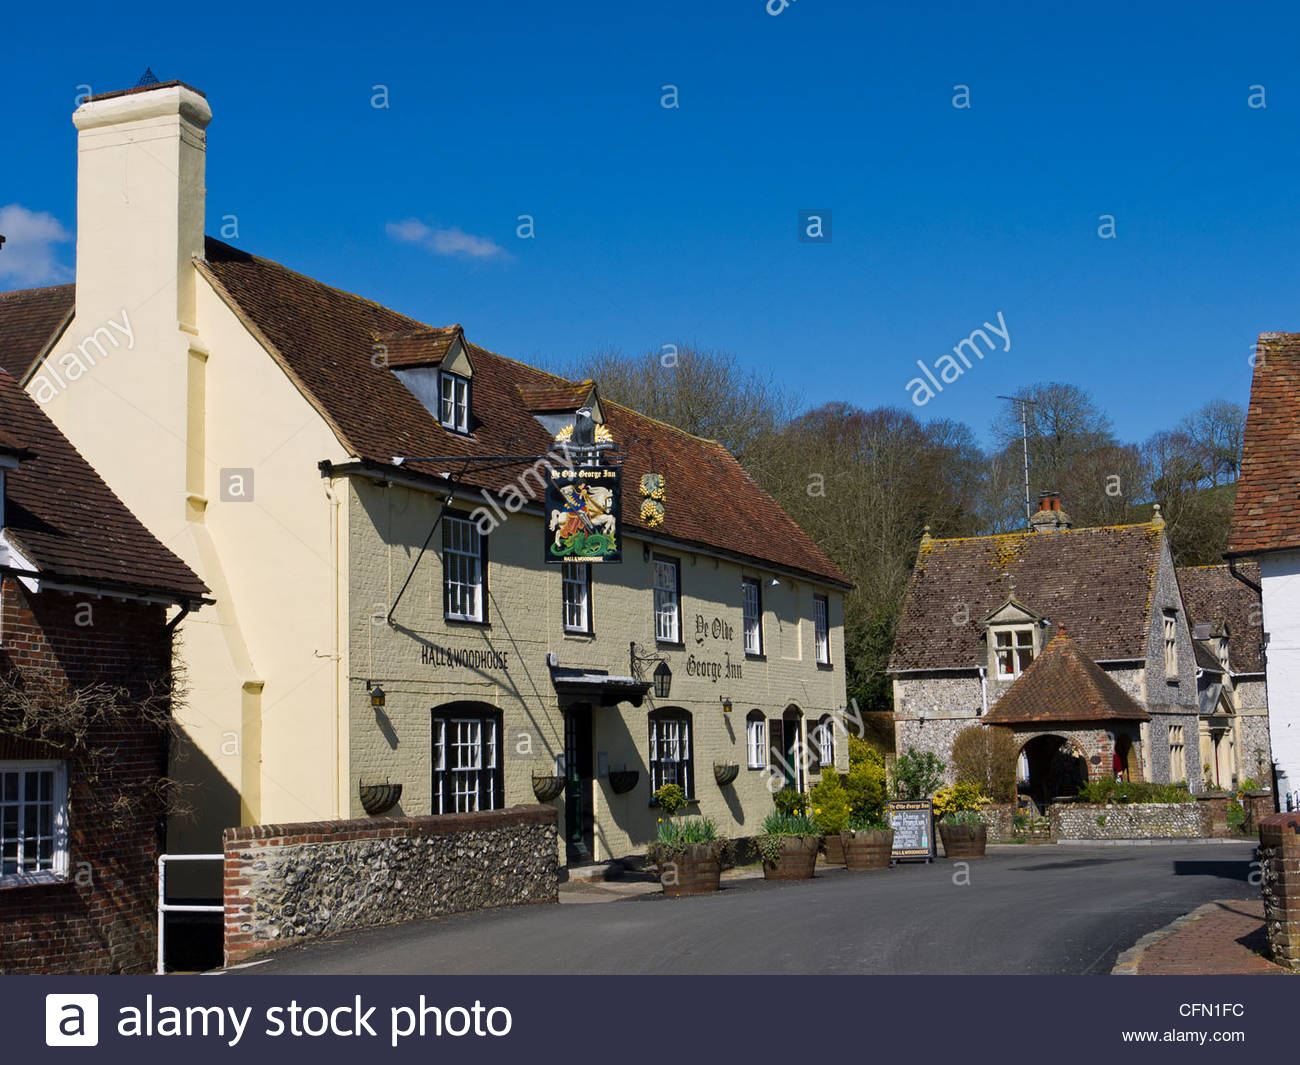 The Old George Inn East Meon Hampshire England UK - Stock Image